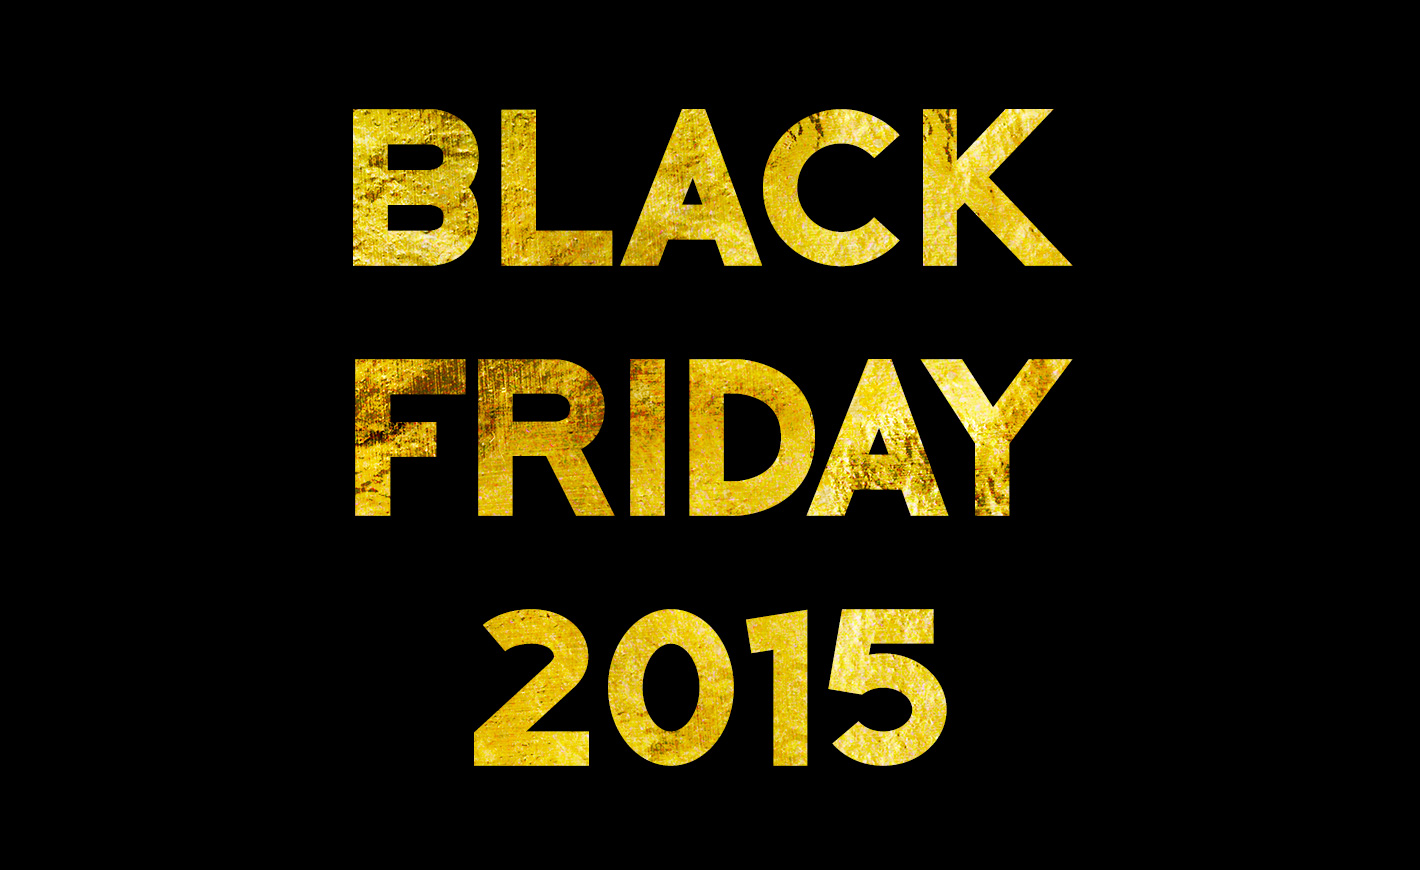 black friday 2015 les derni res promotions en france. Black Bedroom Furniture Sets. Home Design Ideas